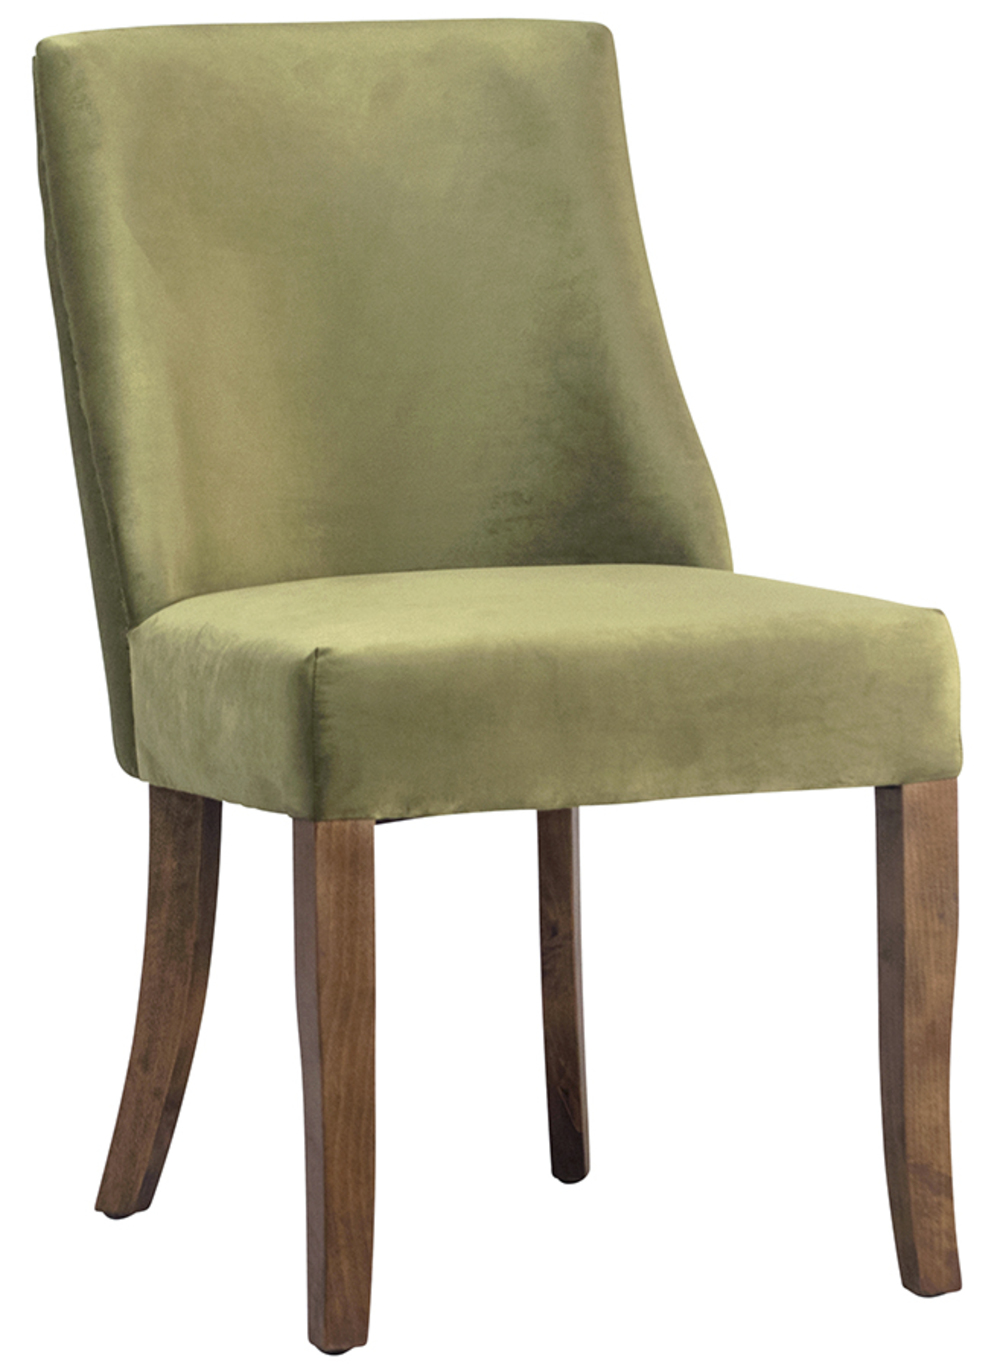 Dovetail Furniture - Elie Dining Chair